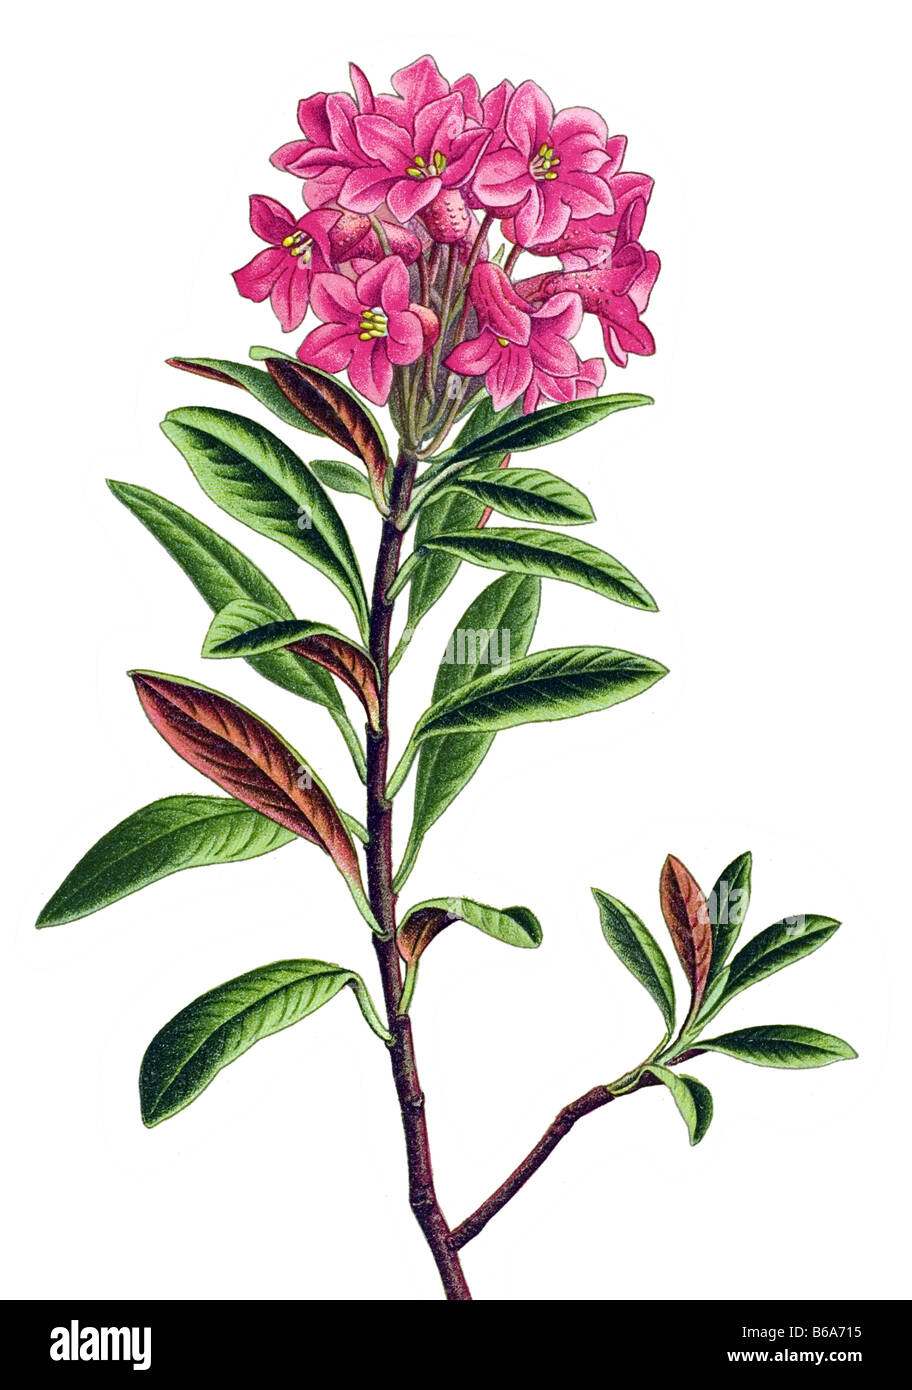 rusty leaved alpenrose rhododendron ferrugineum giftige pflanzen illustrationen stockfoto bild. Black Bedroom Furniture Sets. Home Design Ideas